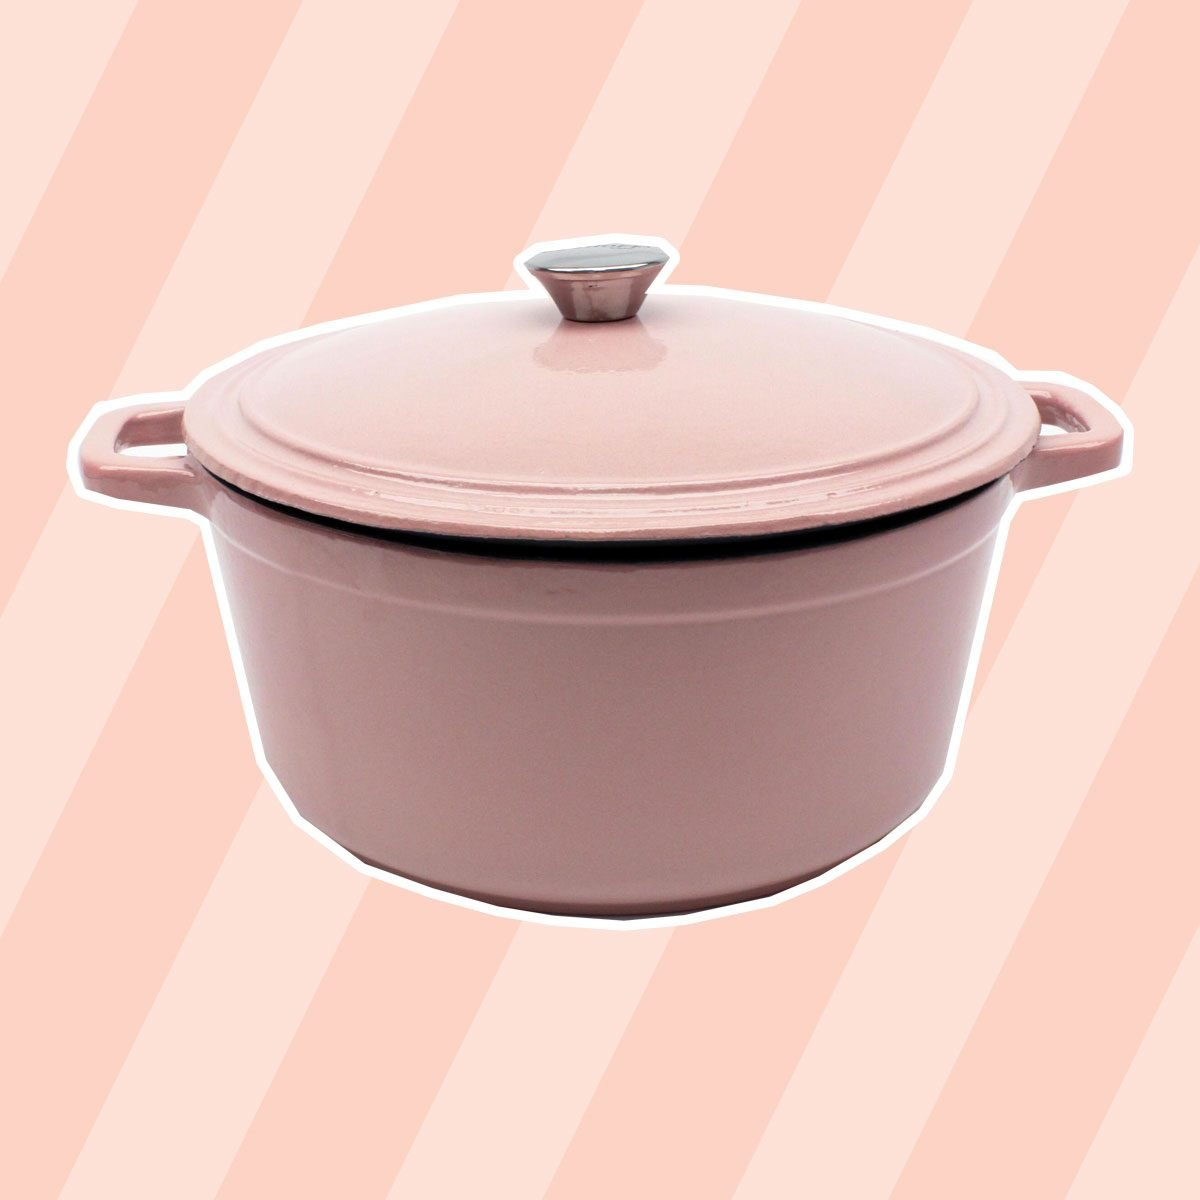 Neo 7 qt. Round Cast Iron Casserole Dish in Pink with Lid